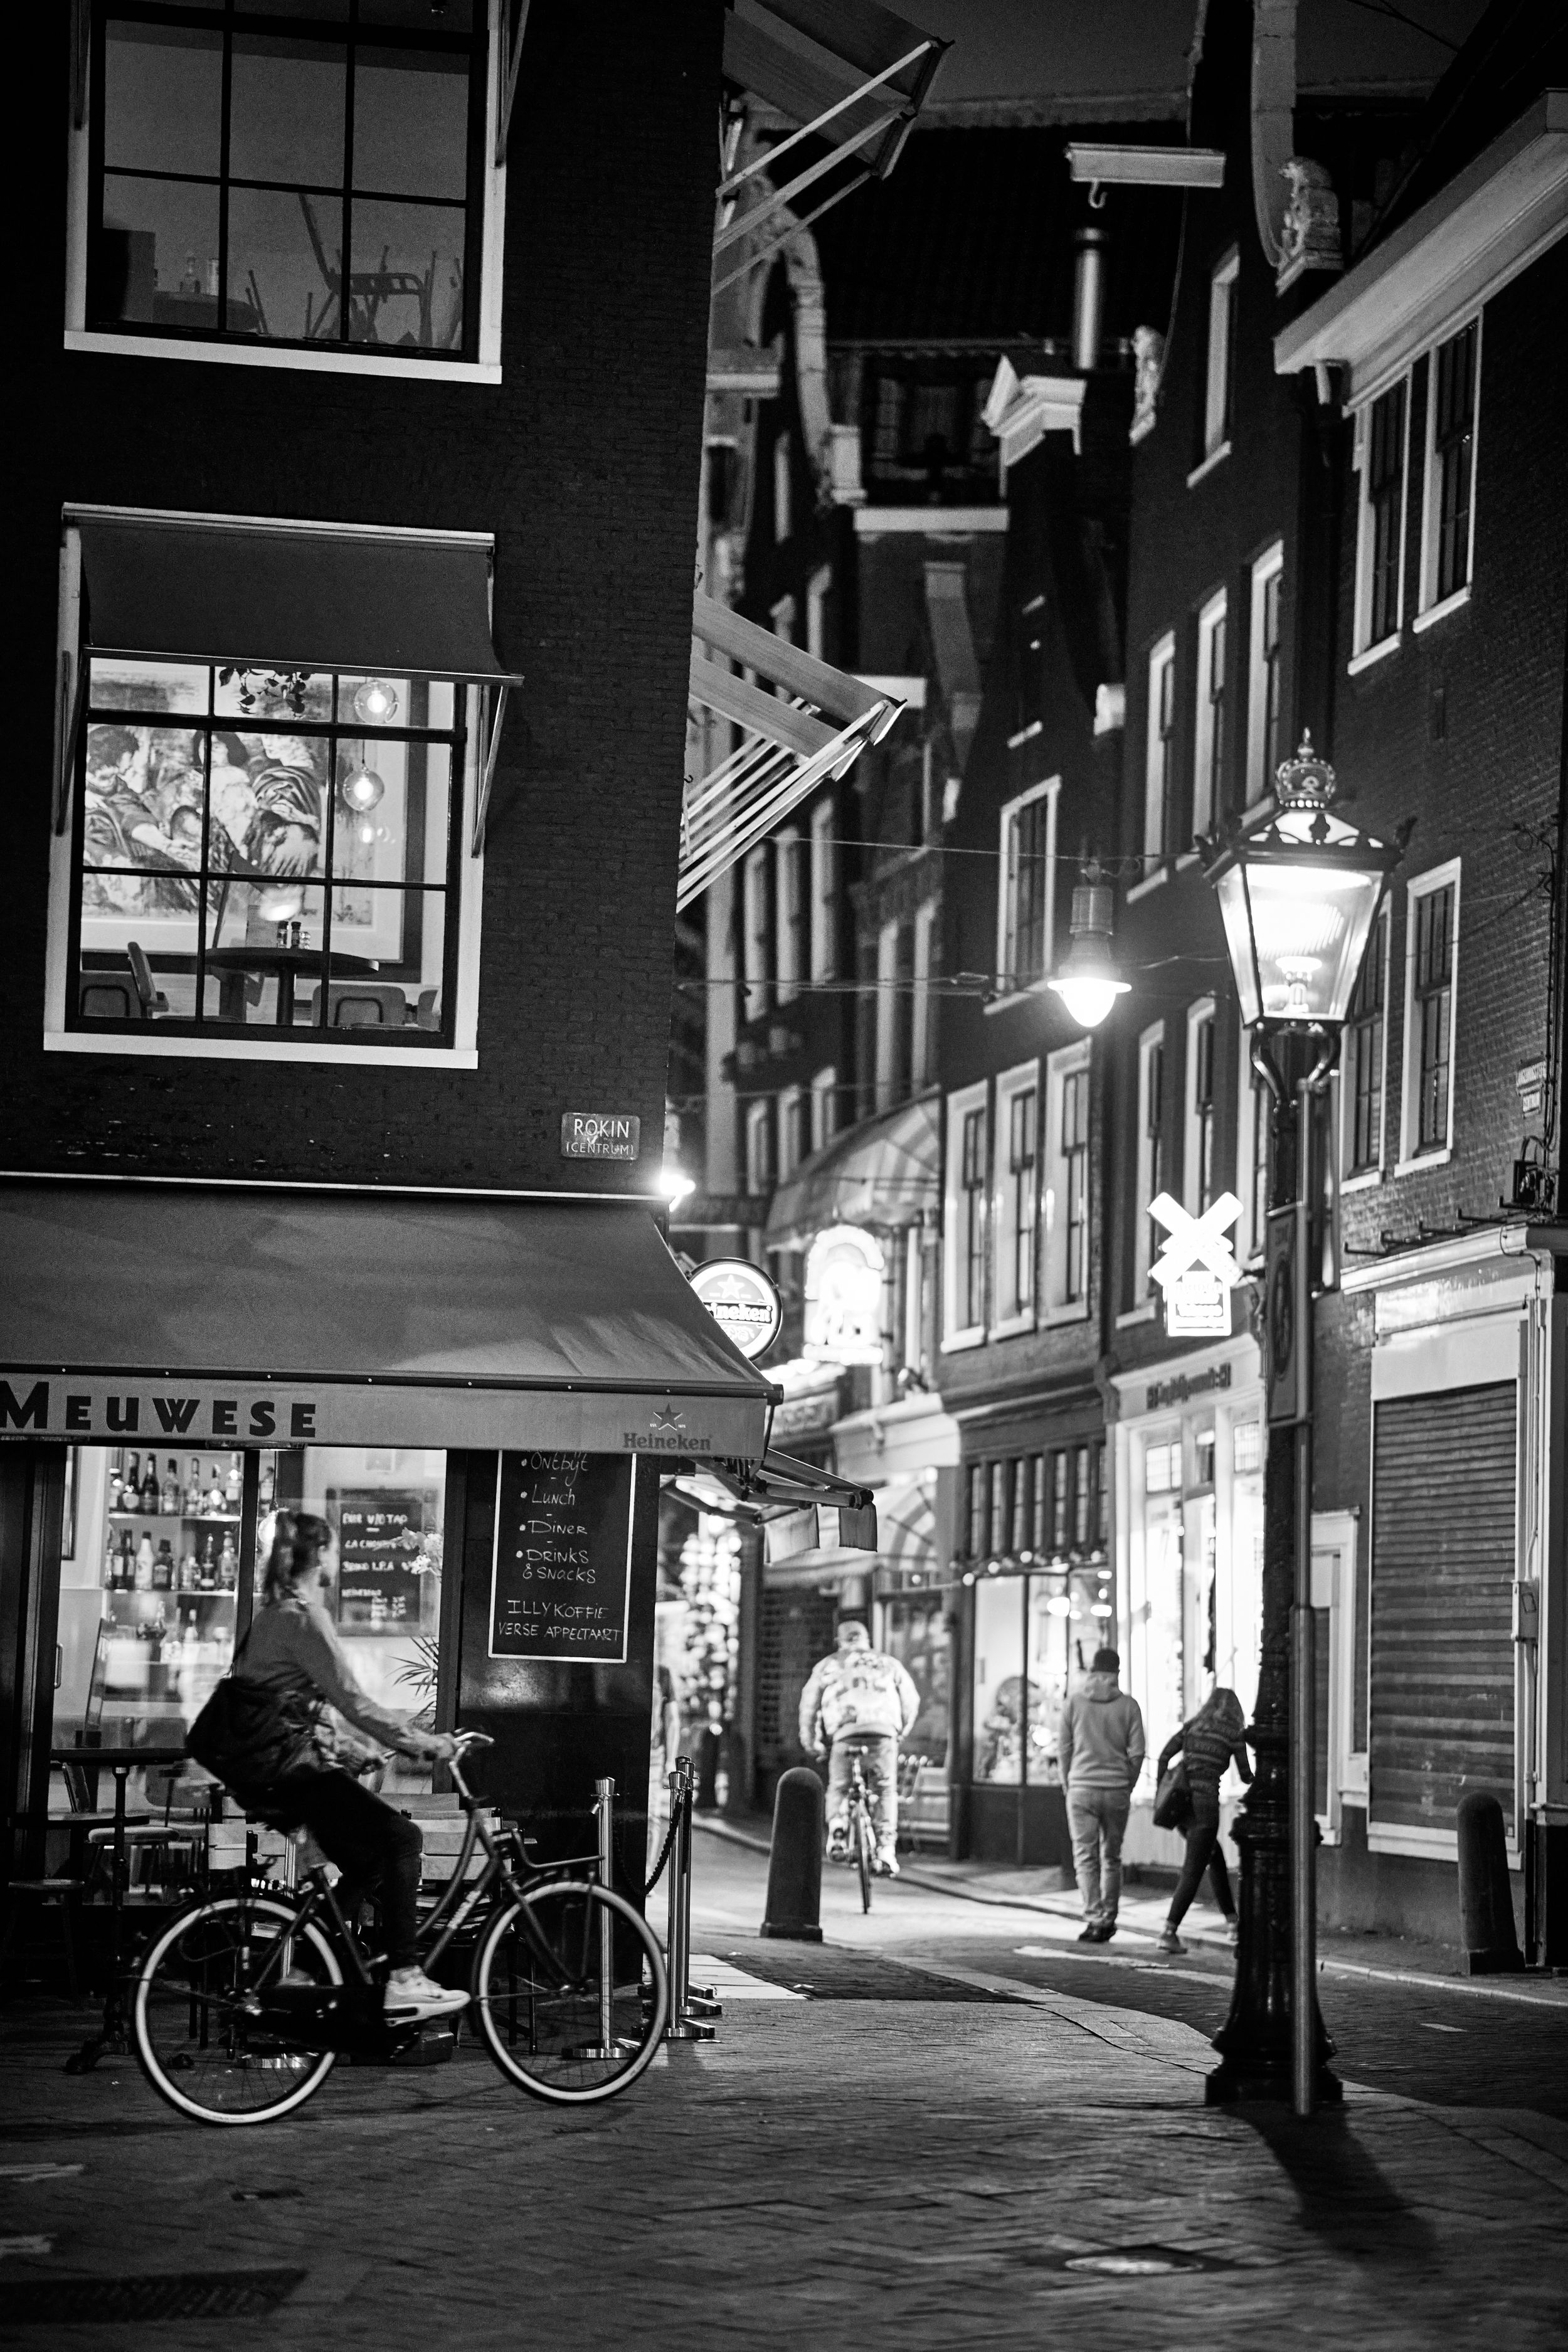 Photograph of lady riding bicycle at night in Amsterdam